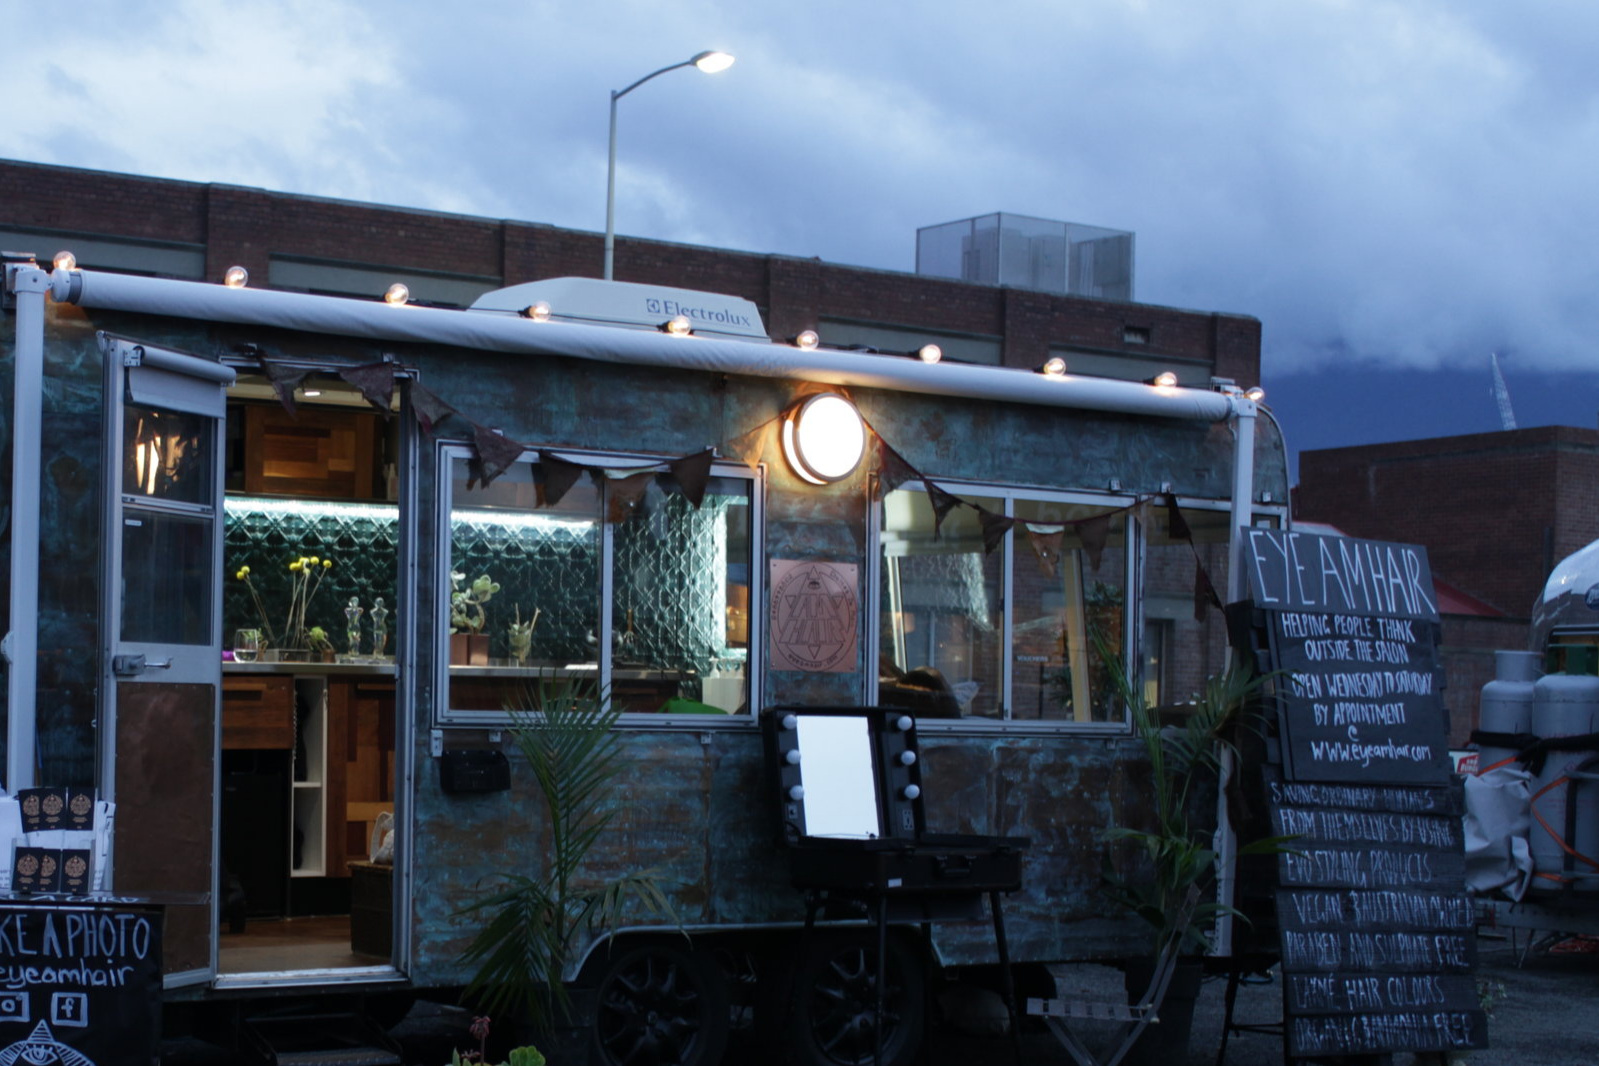 Find the copper caravan at Macquarie Point, Red Sqaure. - ADDRESS:14B EVANS STREET, HOBART, TASMANIA, AUSTRALIA, 7000.Parking available behind HOBART BREWING CO. & on Hunter and Evans st.